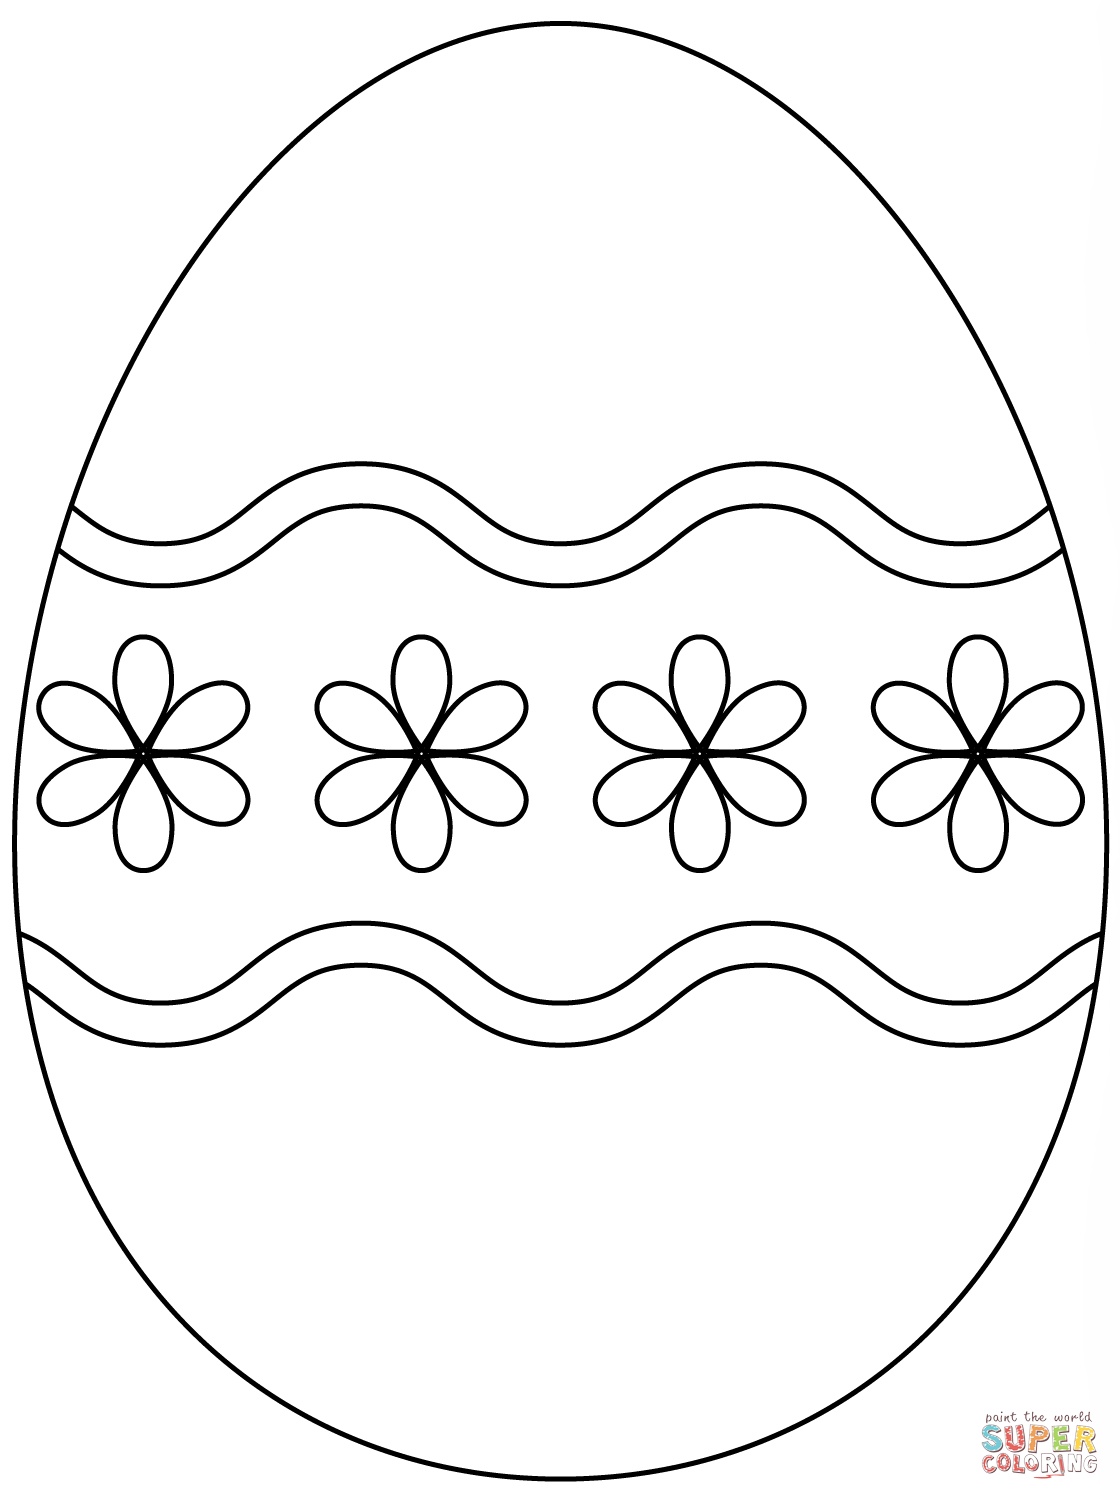 plain easter egg coloring pages easter egg with simple flower pattern coloring page free egg easter pages plain coloring